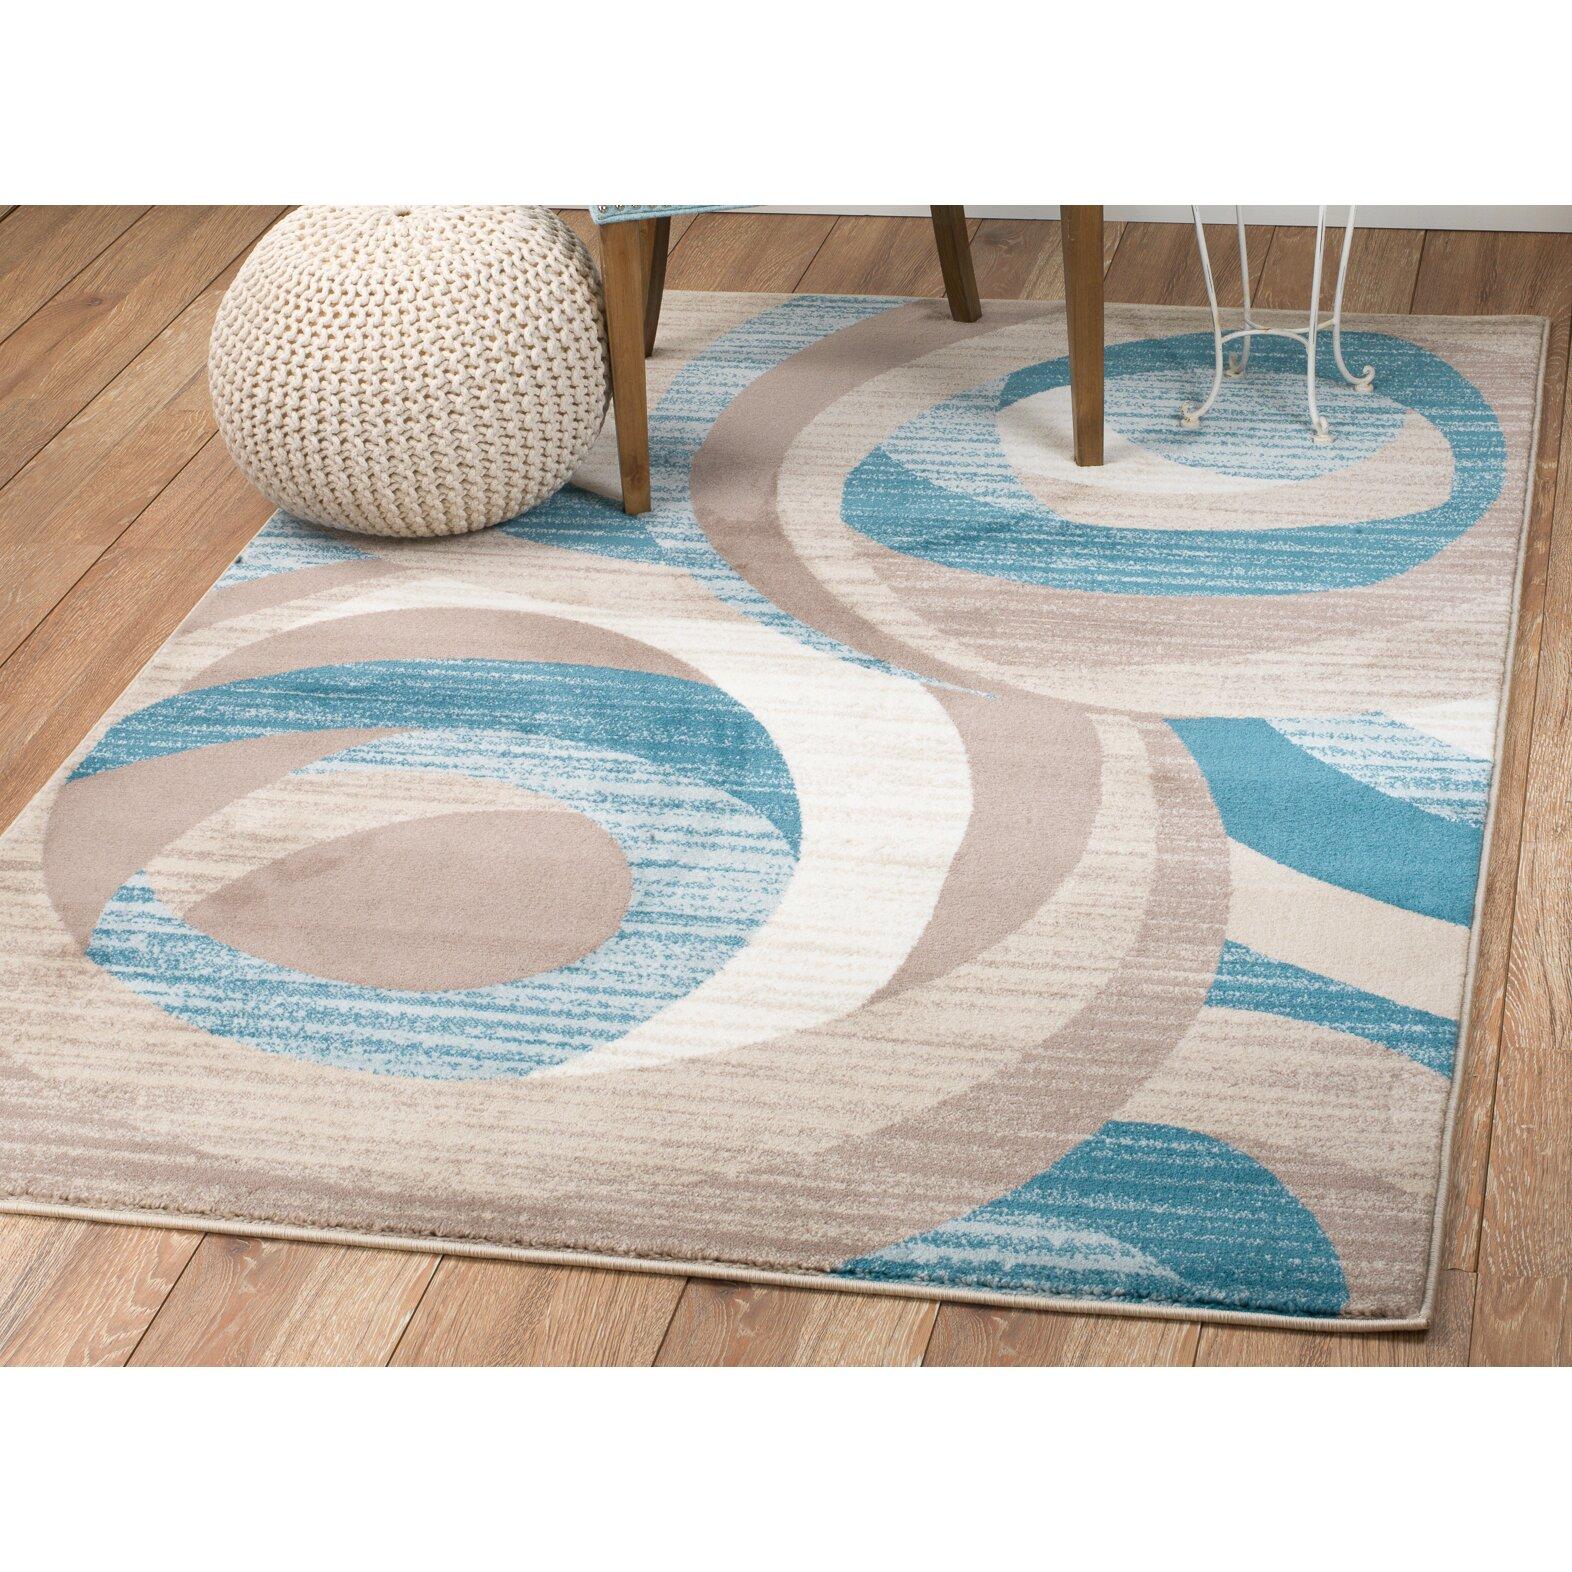 Rug And Decor Inc. Summit Turquoise Area Rug & Reviews